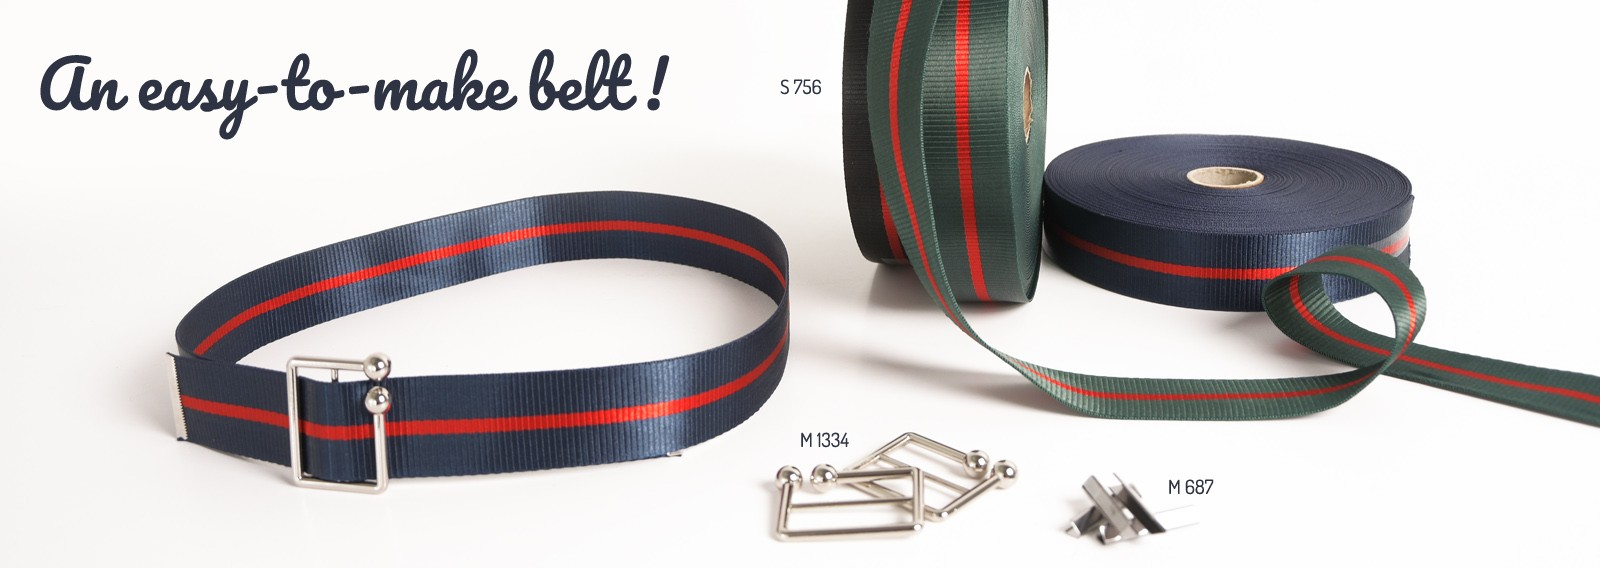 An easy-to-make belt !